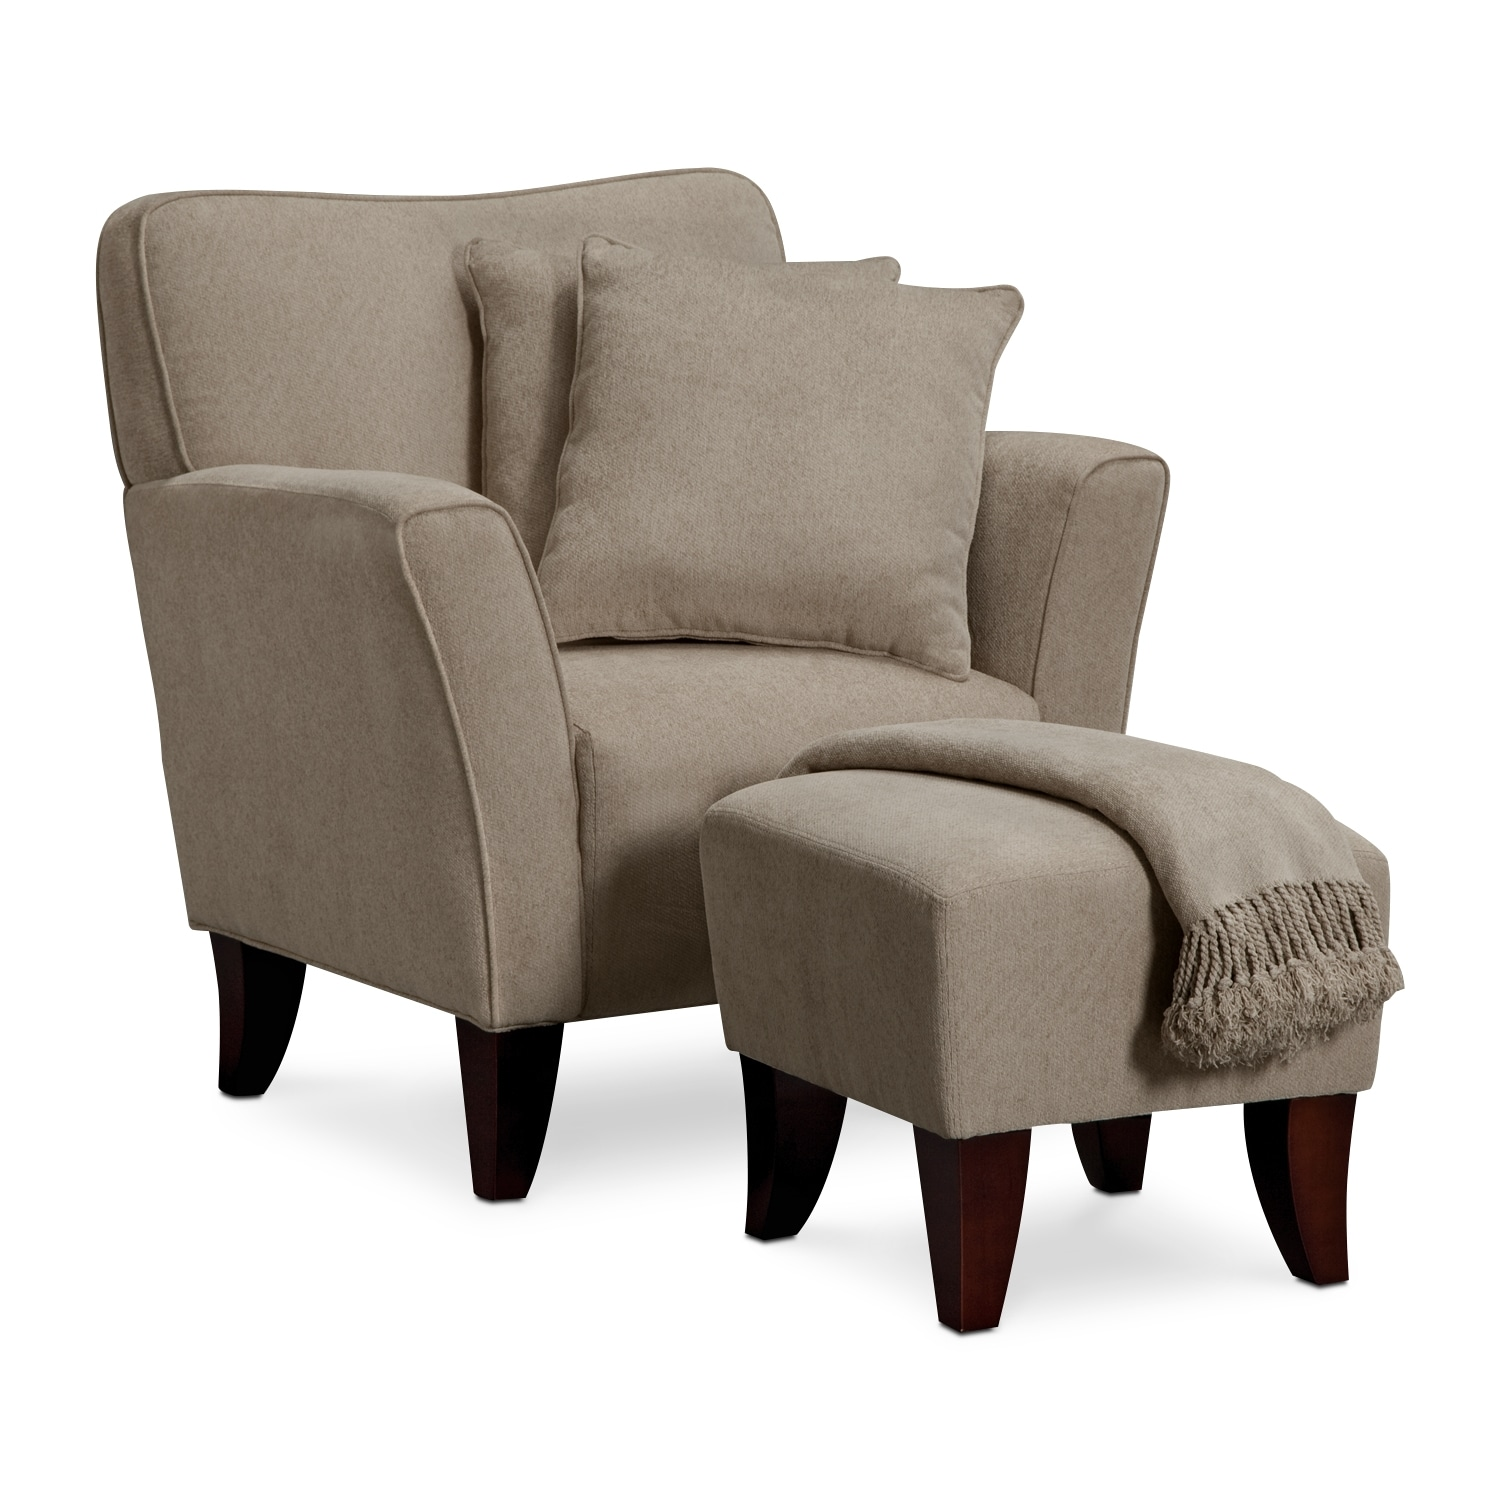 Living Room Furniture - Celeste Chair, Ottoman, Pillows and Throw - Taupe